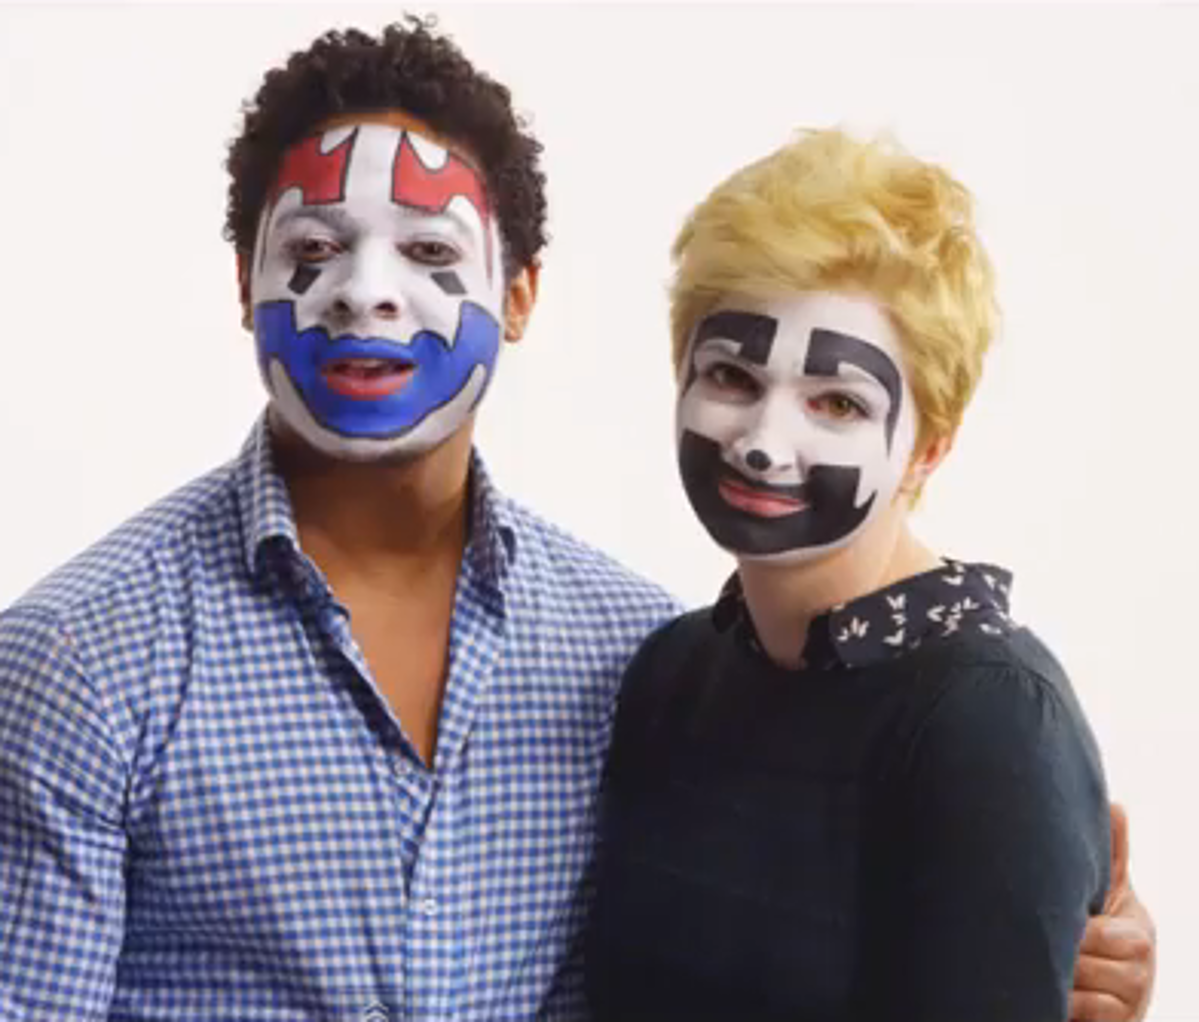 JuggaLove - The Ultimate Dating Website for Juggalos [VIDEO]